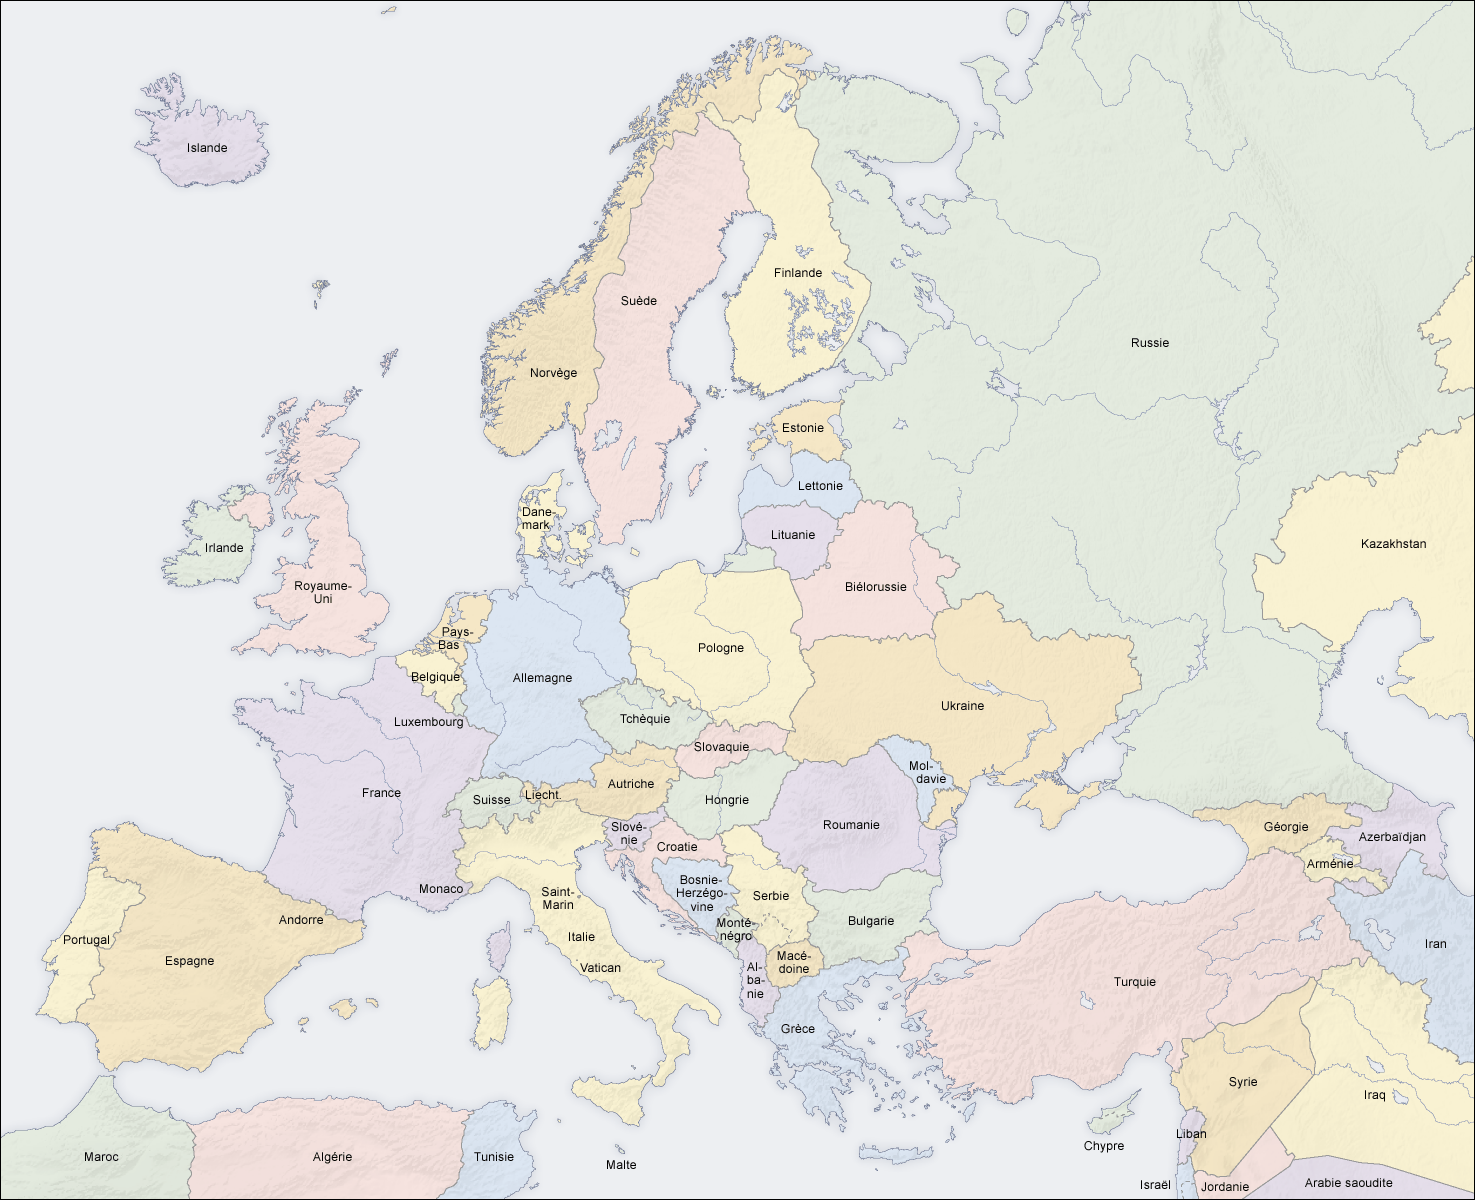 File:Europe countries map fr.png   Wikimedia Commons